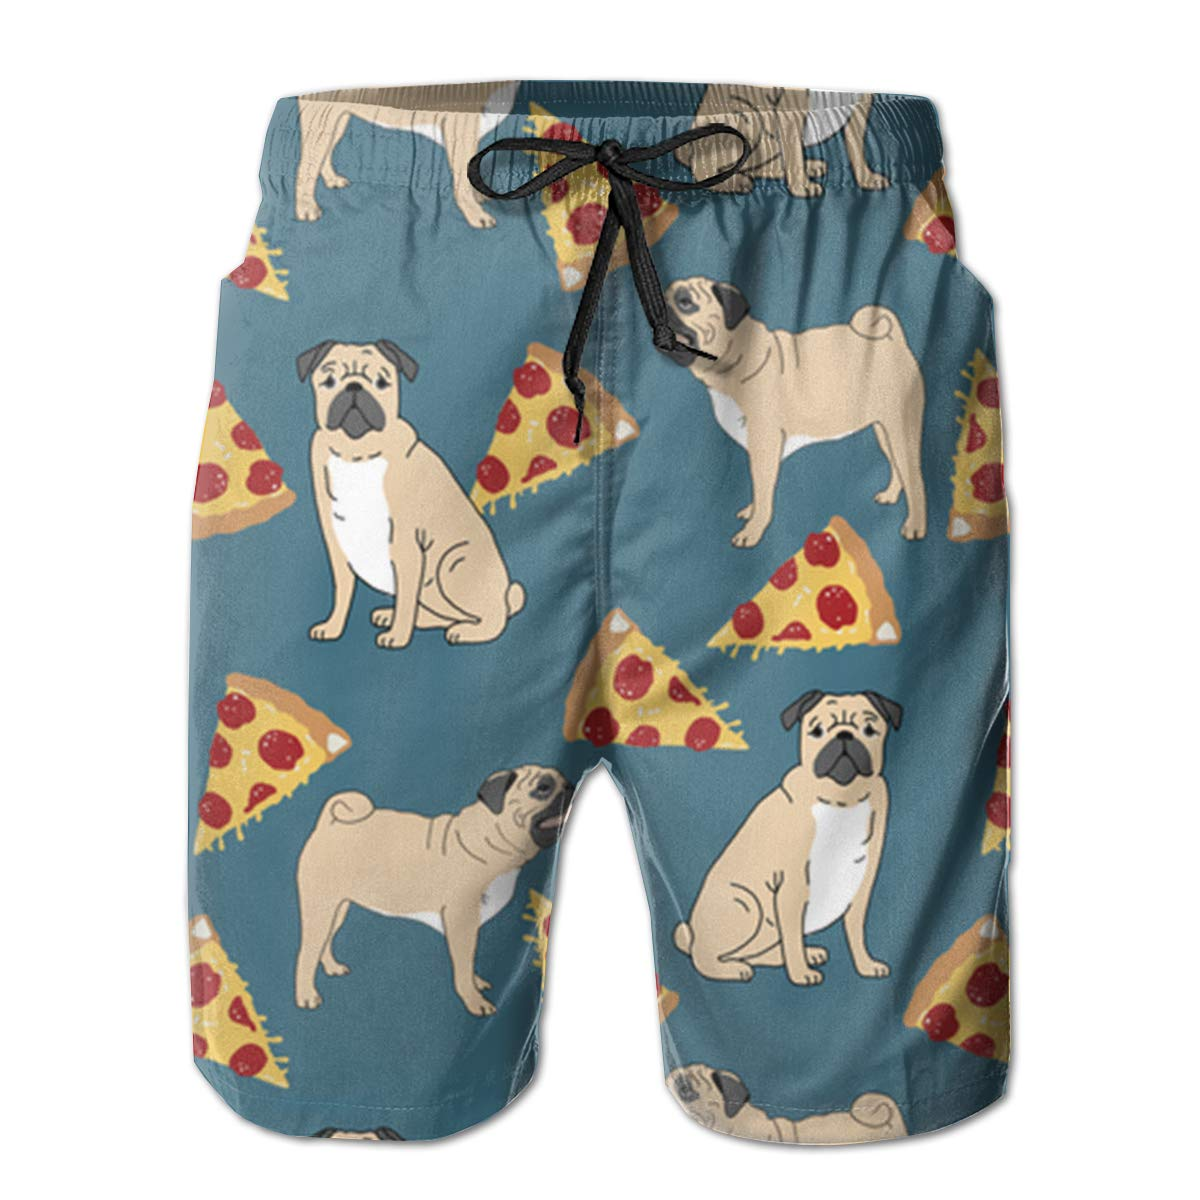 Bilybily Pug Pizza Blue Shop Preview Mens Swim Trunks Quick Dry Board Shorts with Pockets Summer Beach Shorts